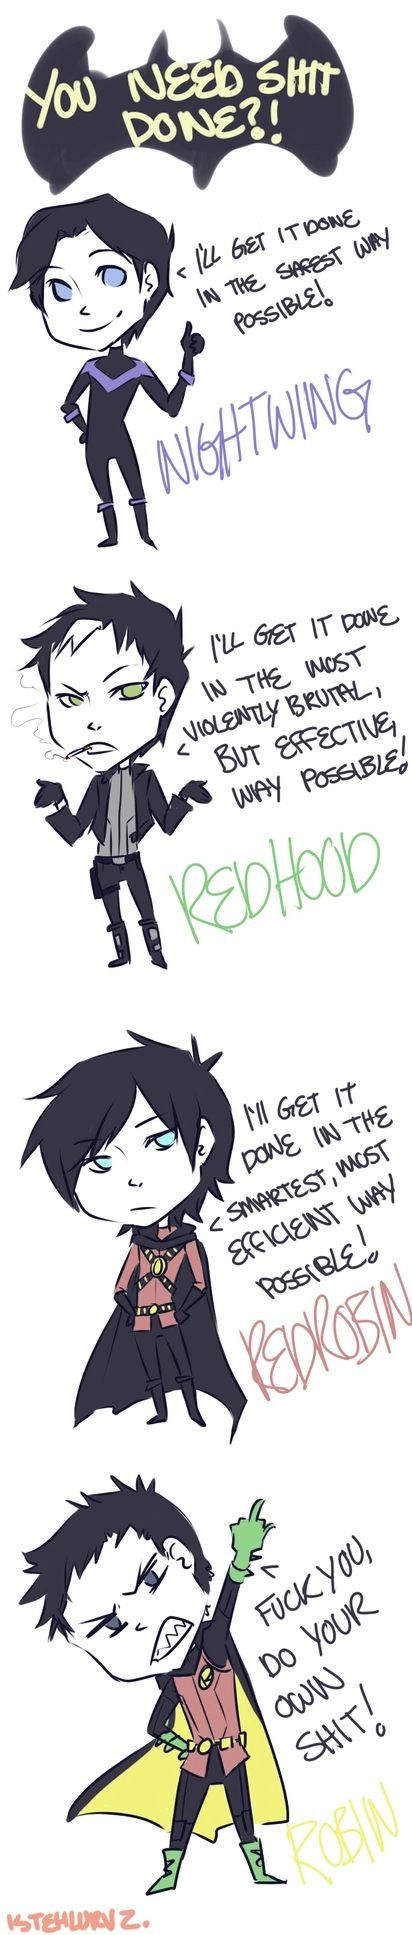 A variety of methods to handle, courtesy of the Robins. <3 Damien's method. kekeke~